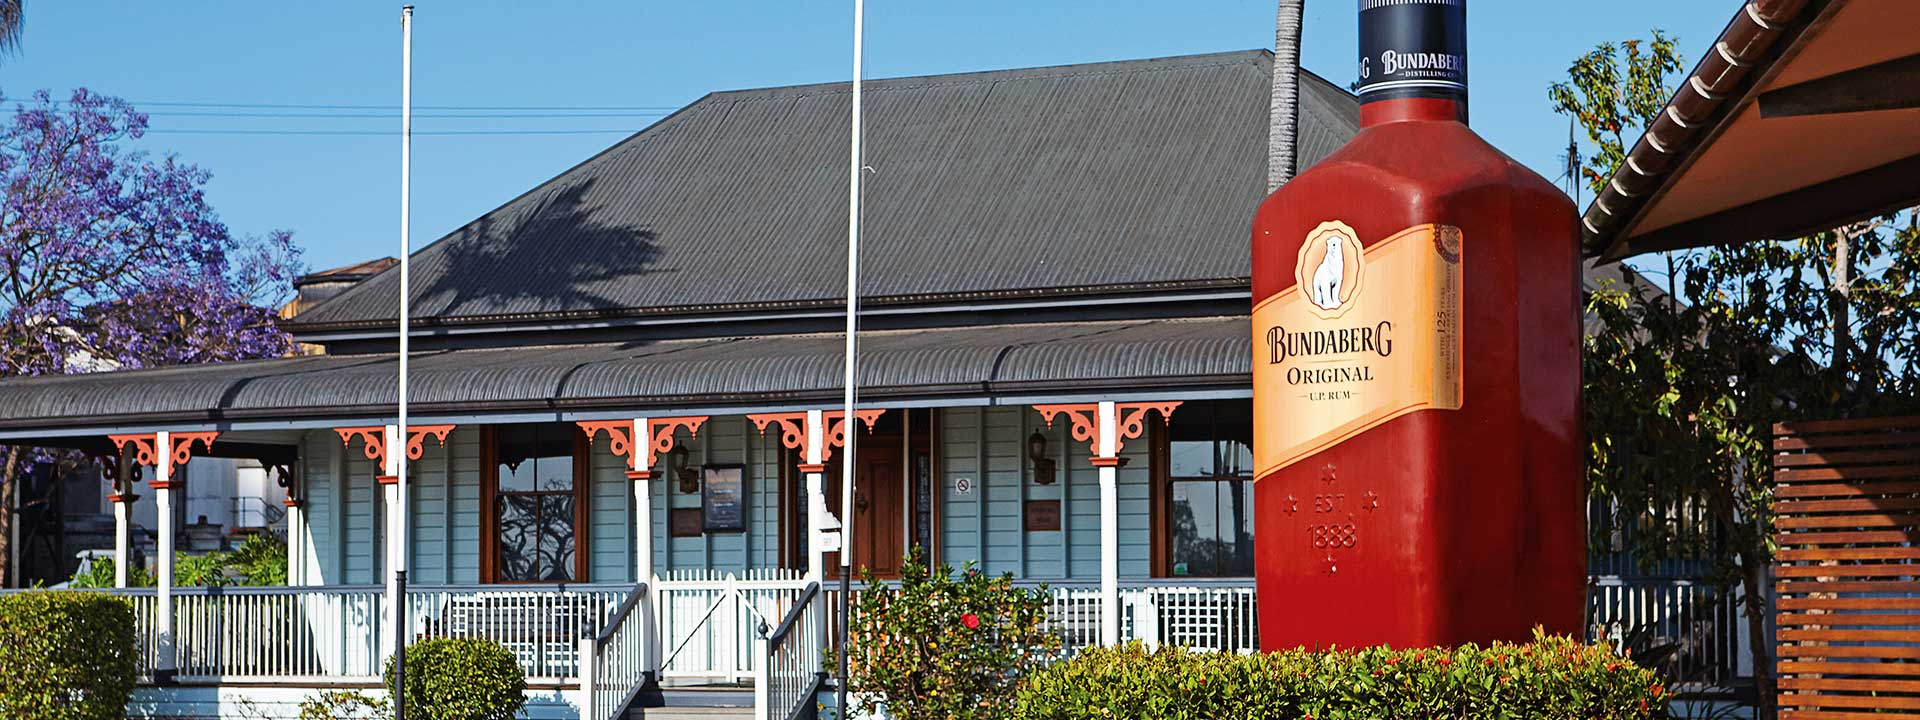 Find out why Bundaberg is famous for its rum at Bundaberg Distillery